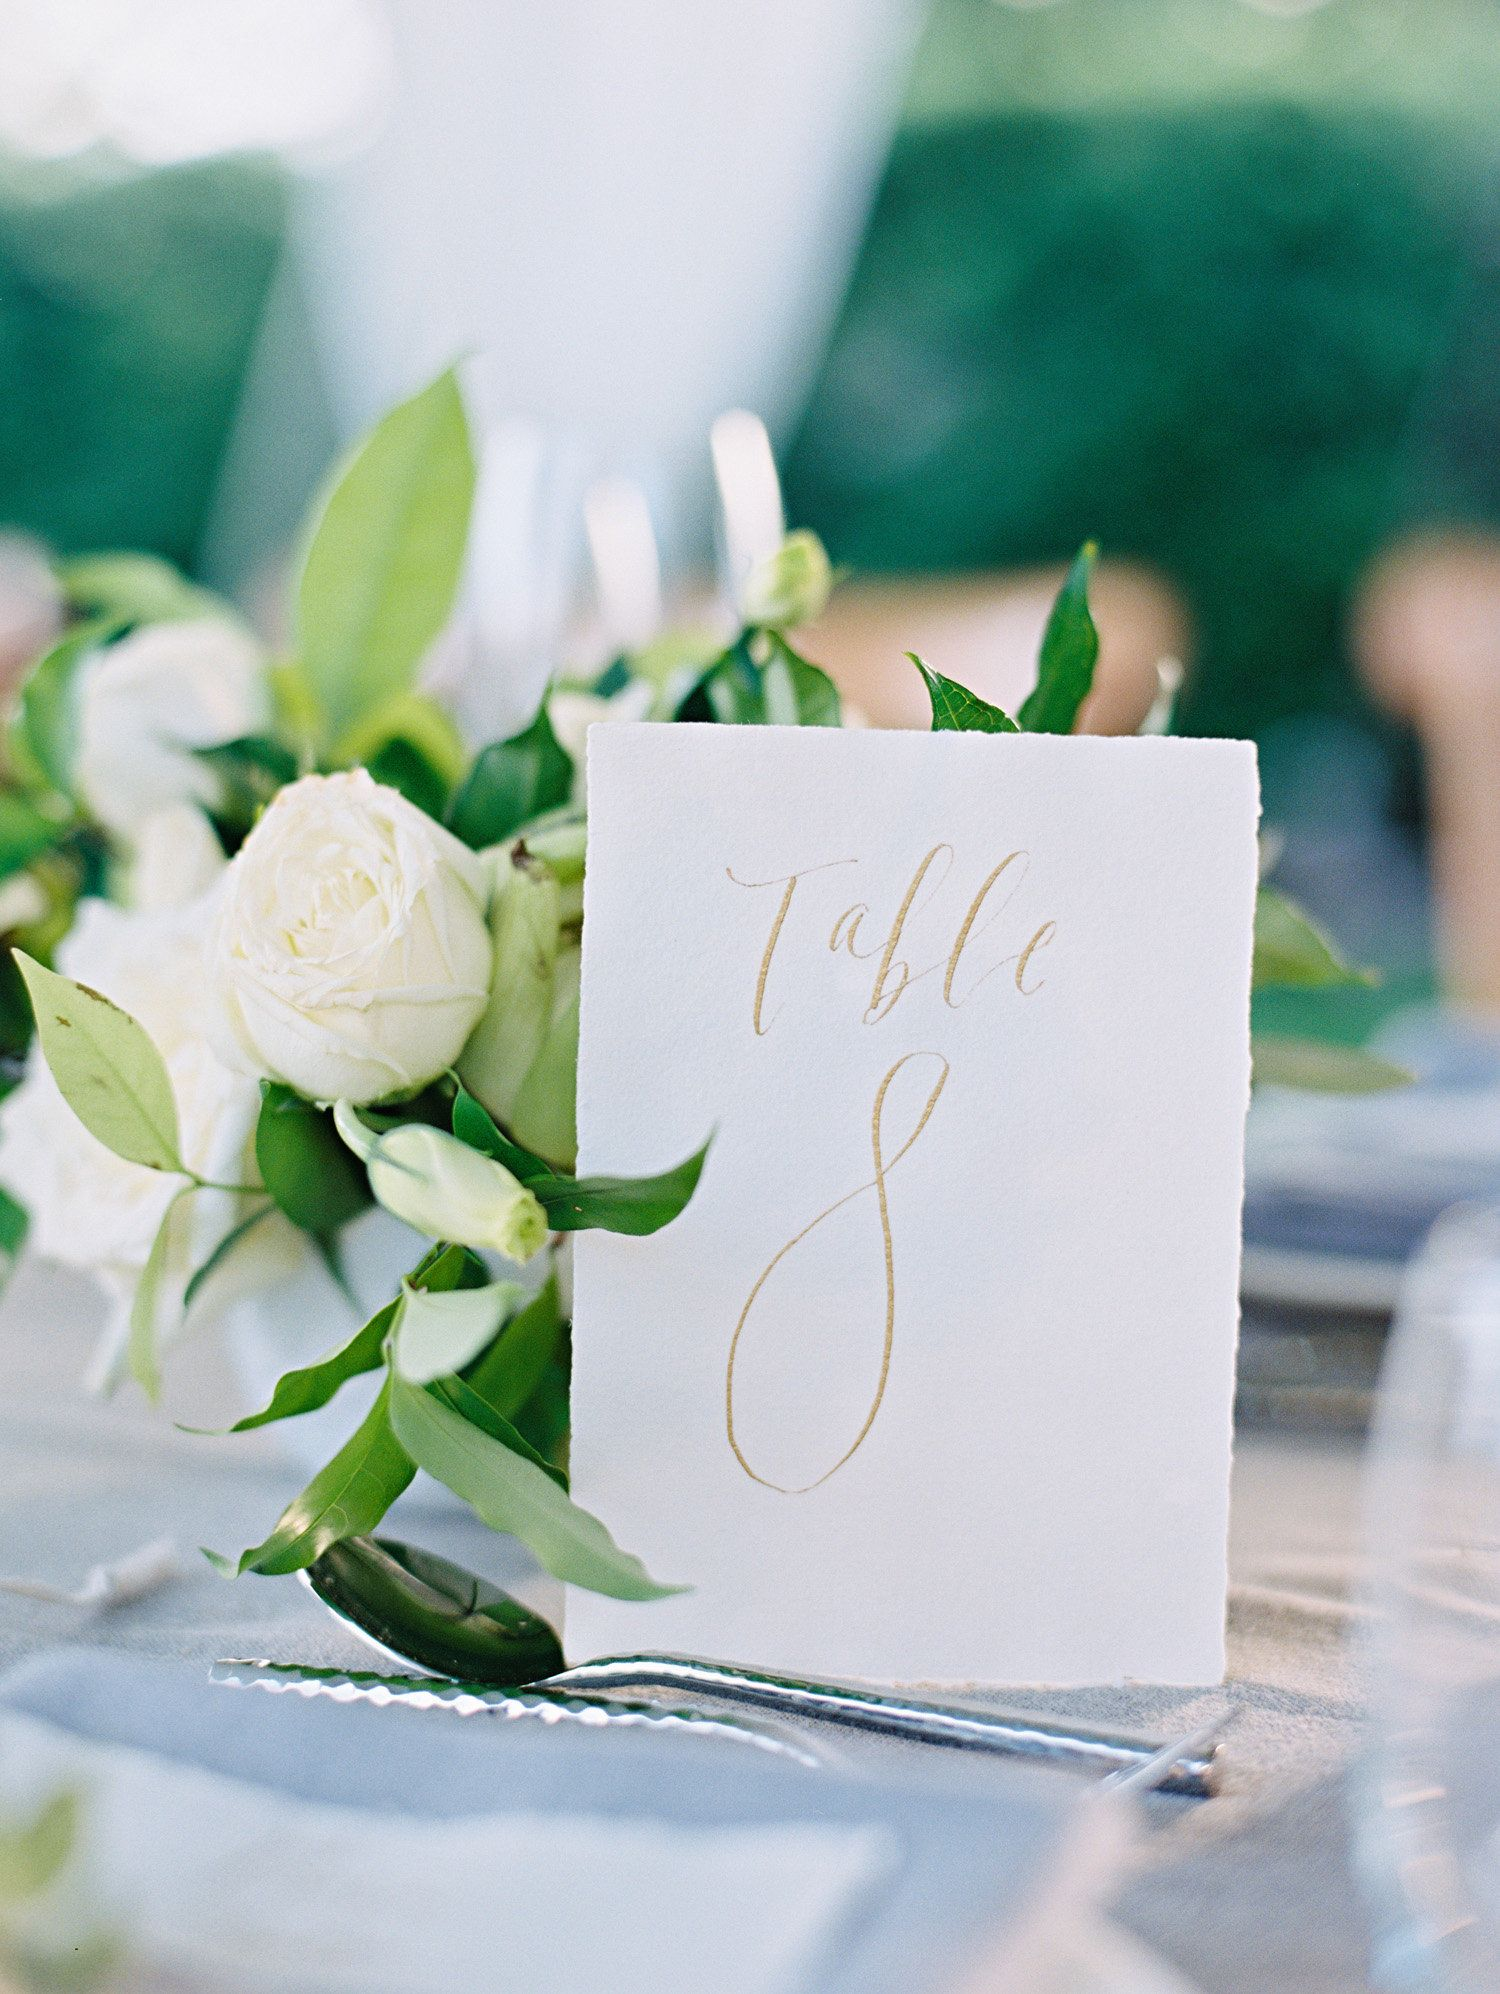 Simple wedding decoration designs  Simple Calligraphy Table Numbers  Gold Weddings  Destination